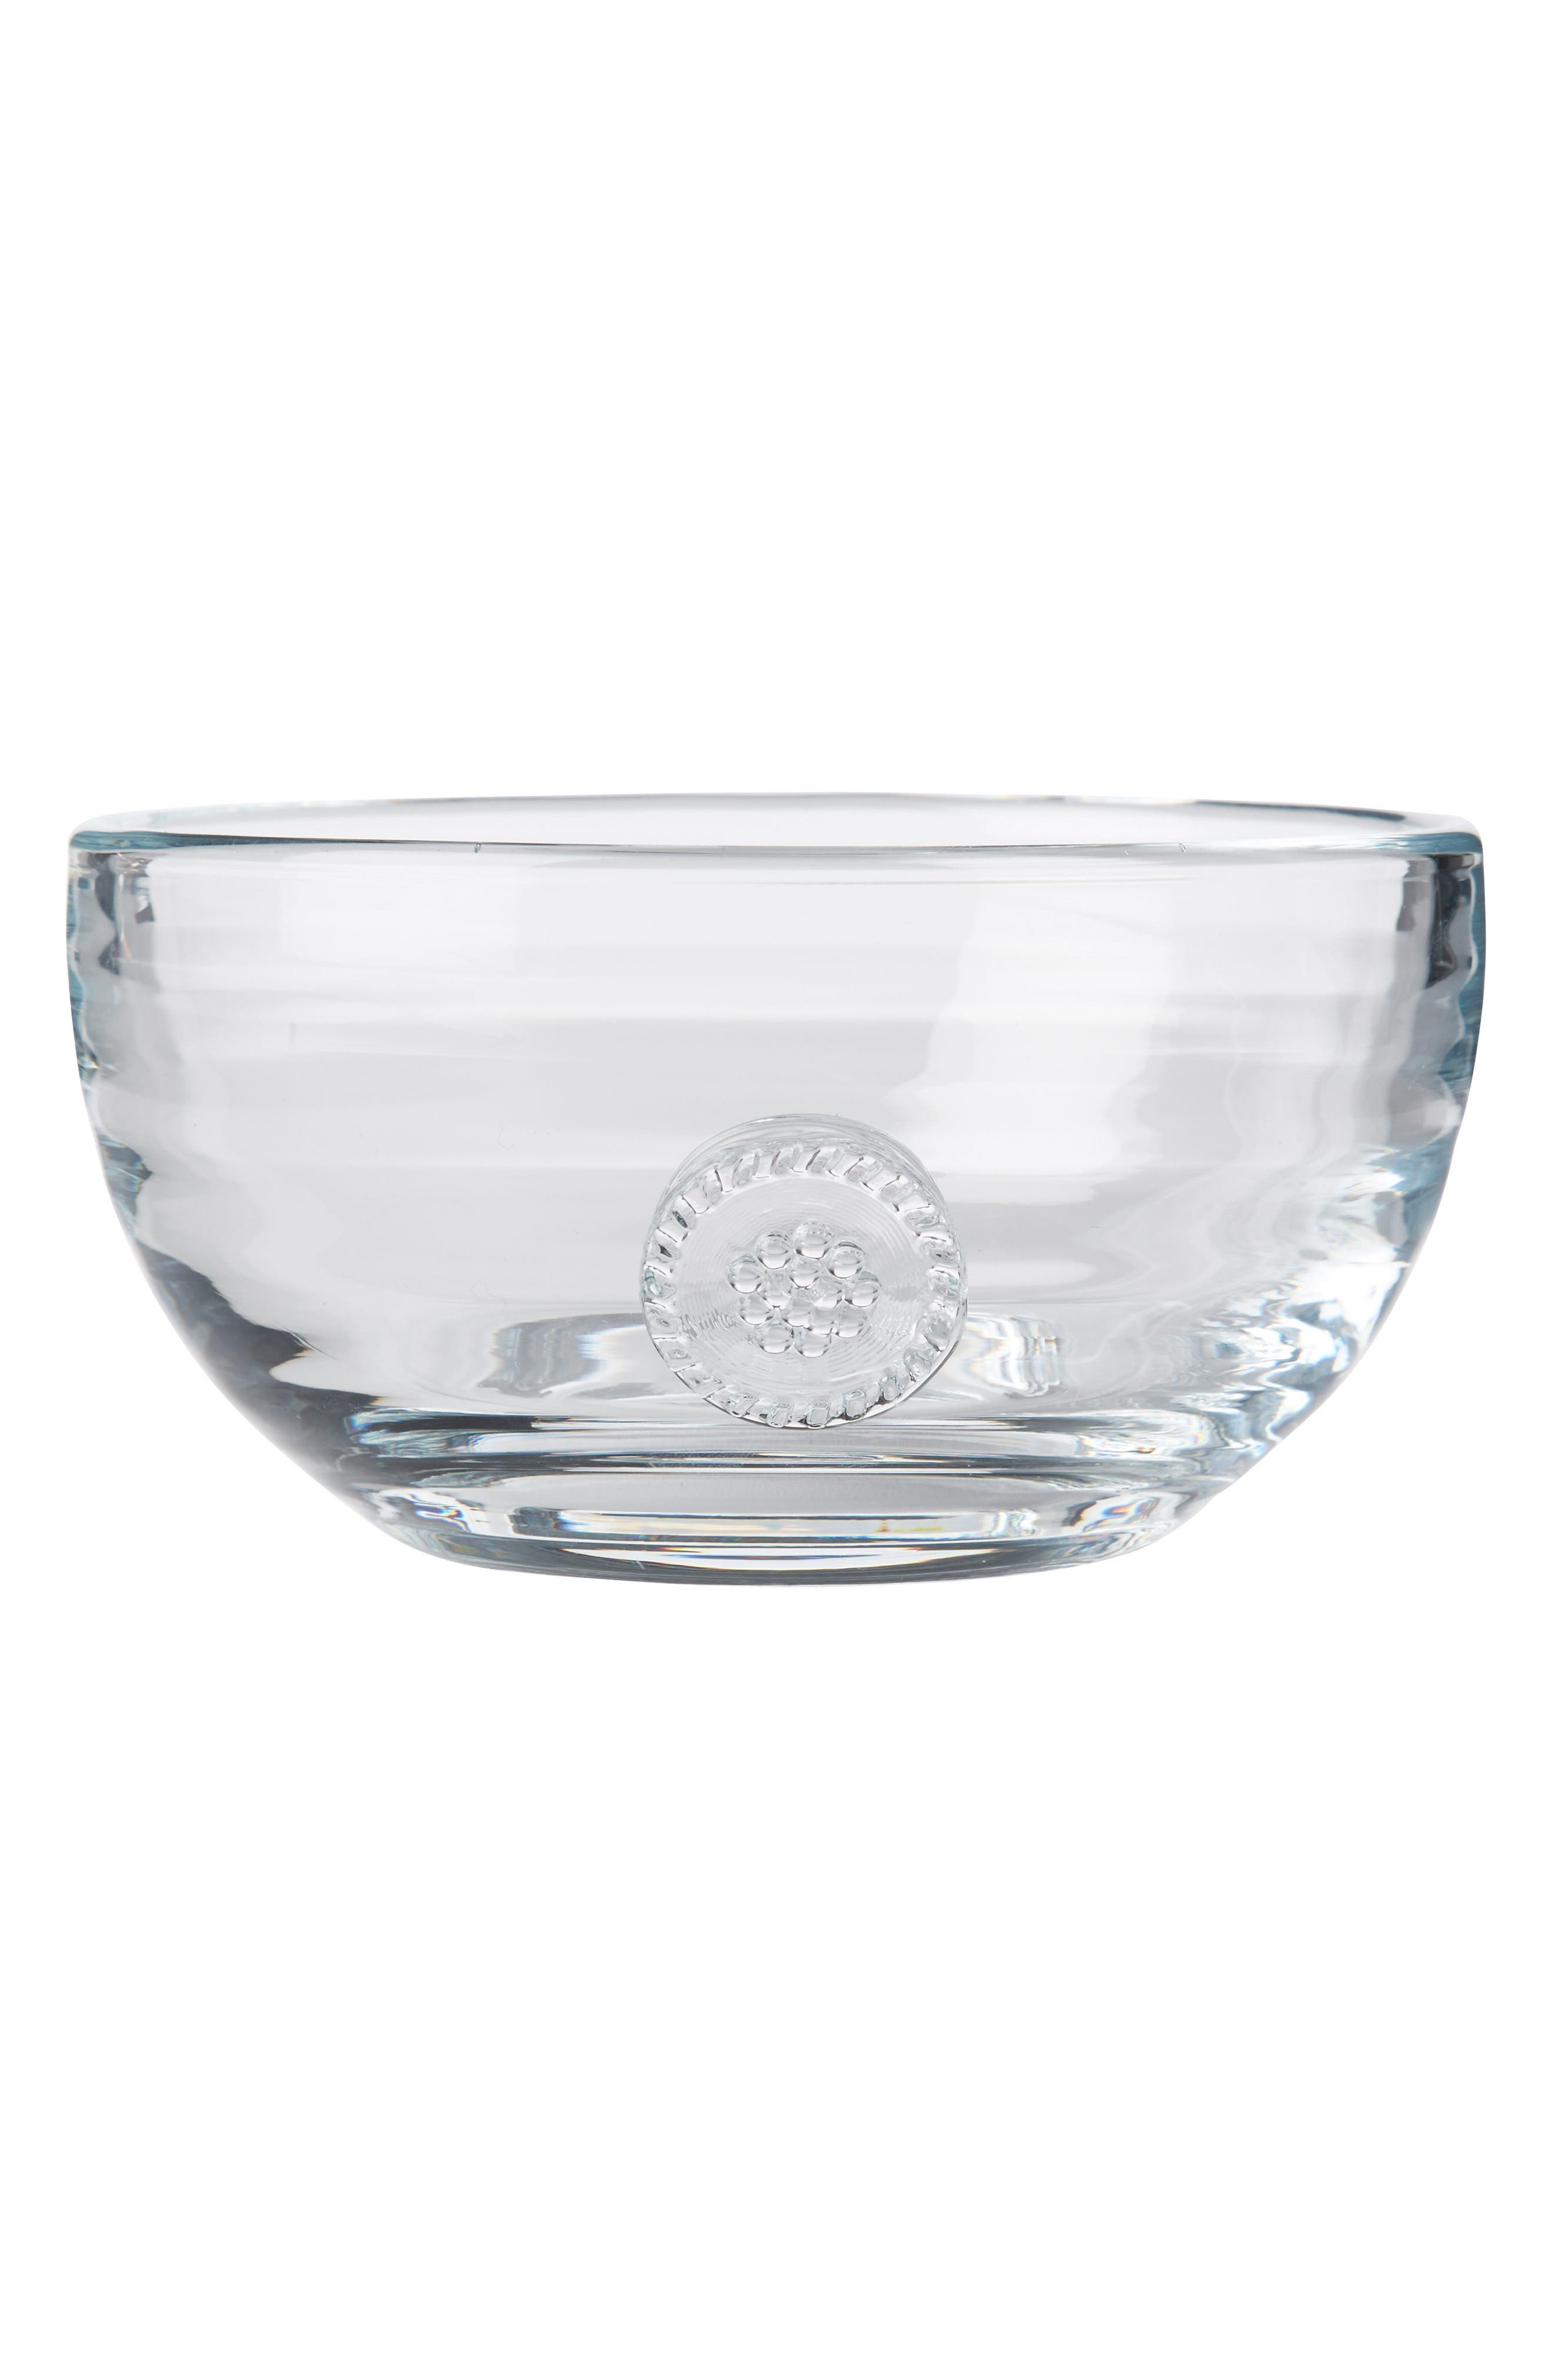 Berry & Thread Small Glass Bowl,                             Main thumbnail 1, color,                             CLEAR